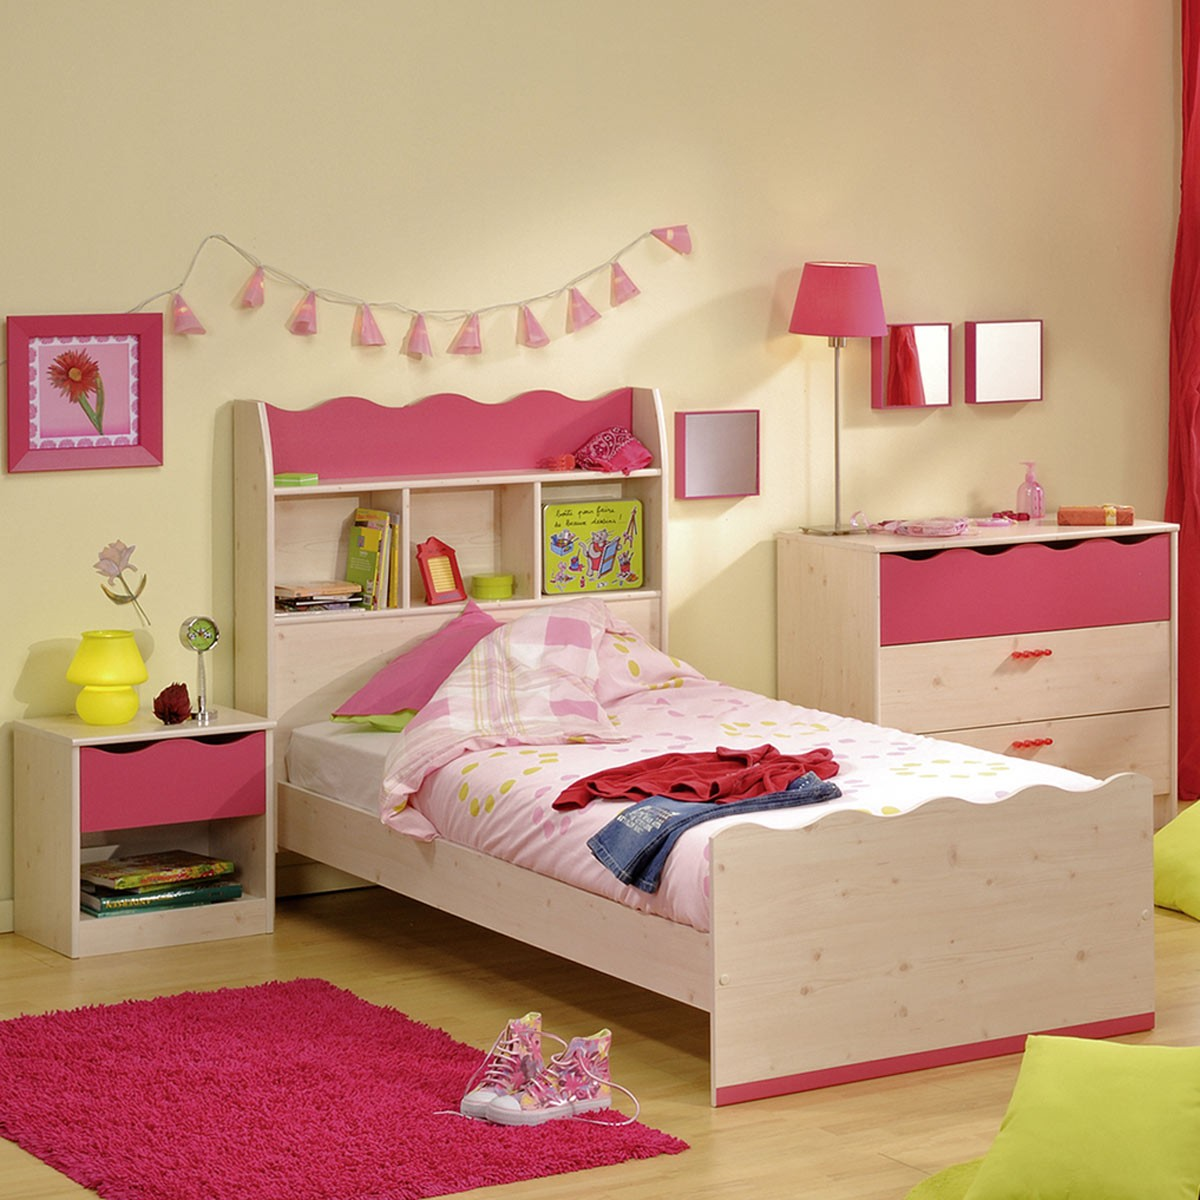 kinderbett m dchenbett bett 90x200 mit regal in kiefer nachbildung pink ebay. Black Bedroom Furniture Sets. Home Design Ideas